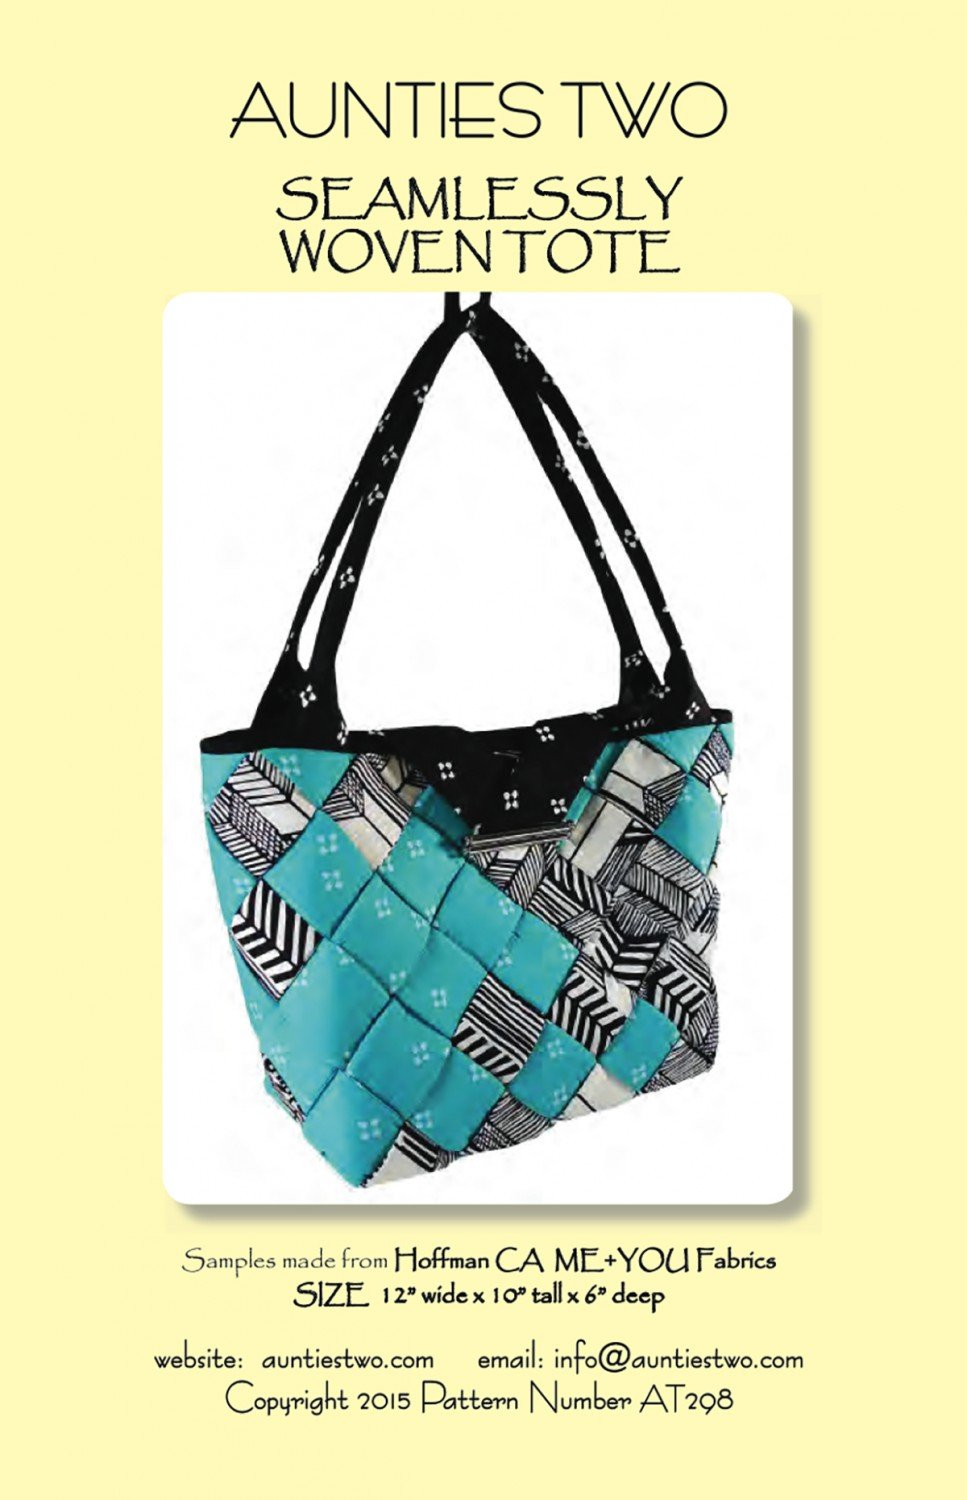 Aunties Two Seamlessly Woven Tote Pattern